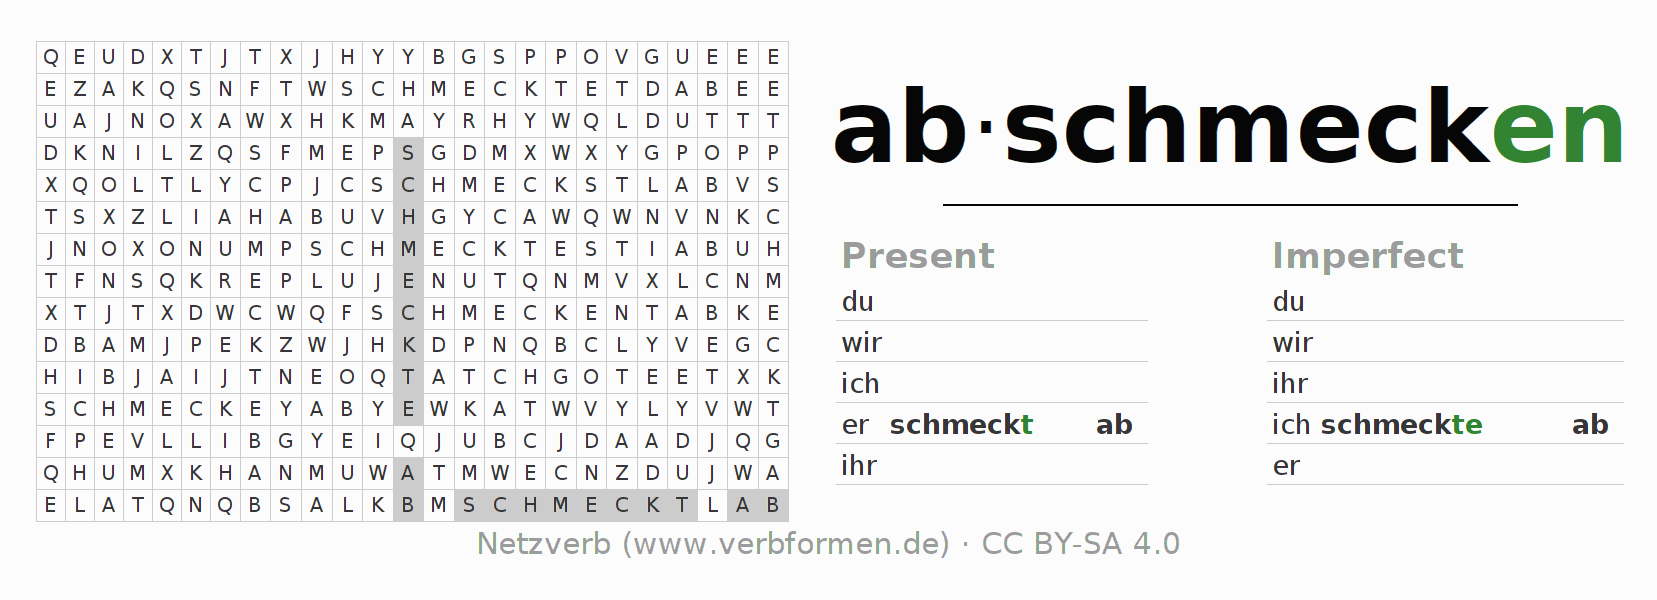 Word search puzzle for the conjugation of the verb abschmecken